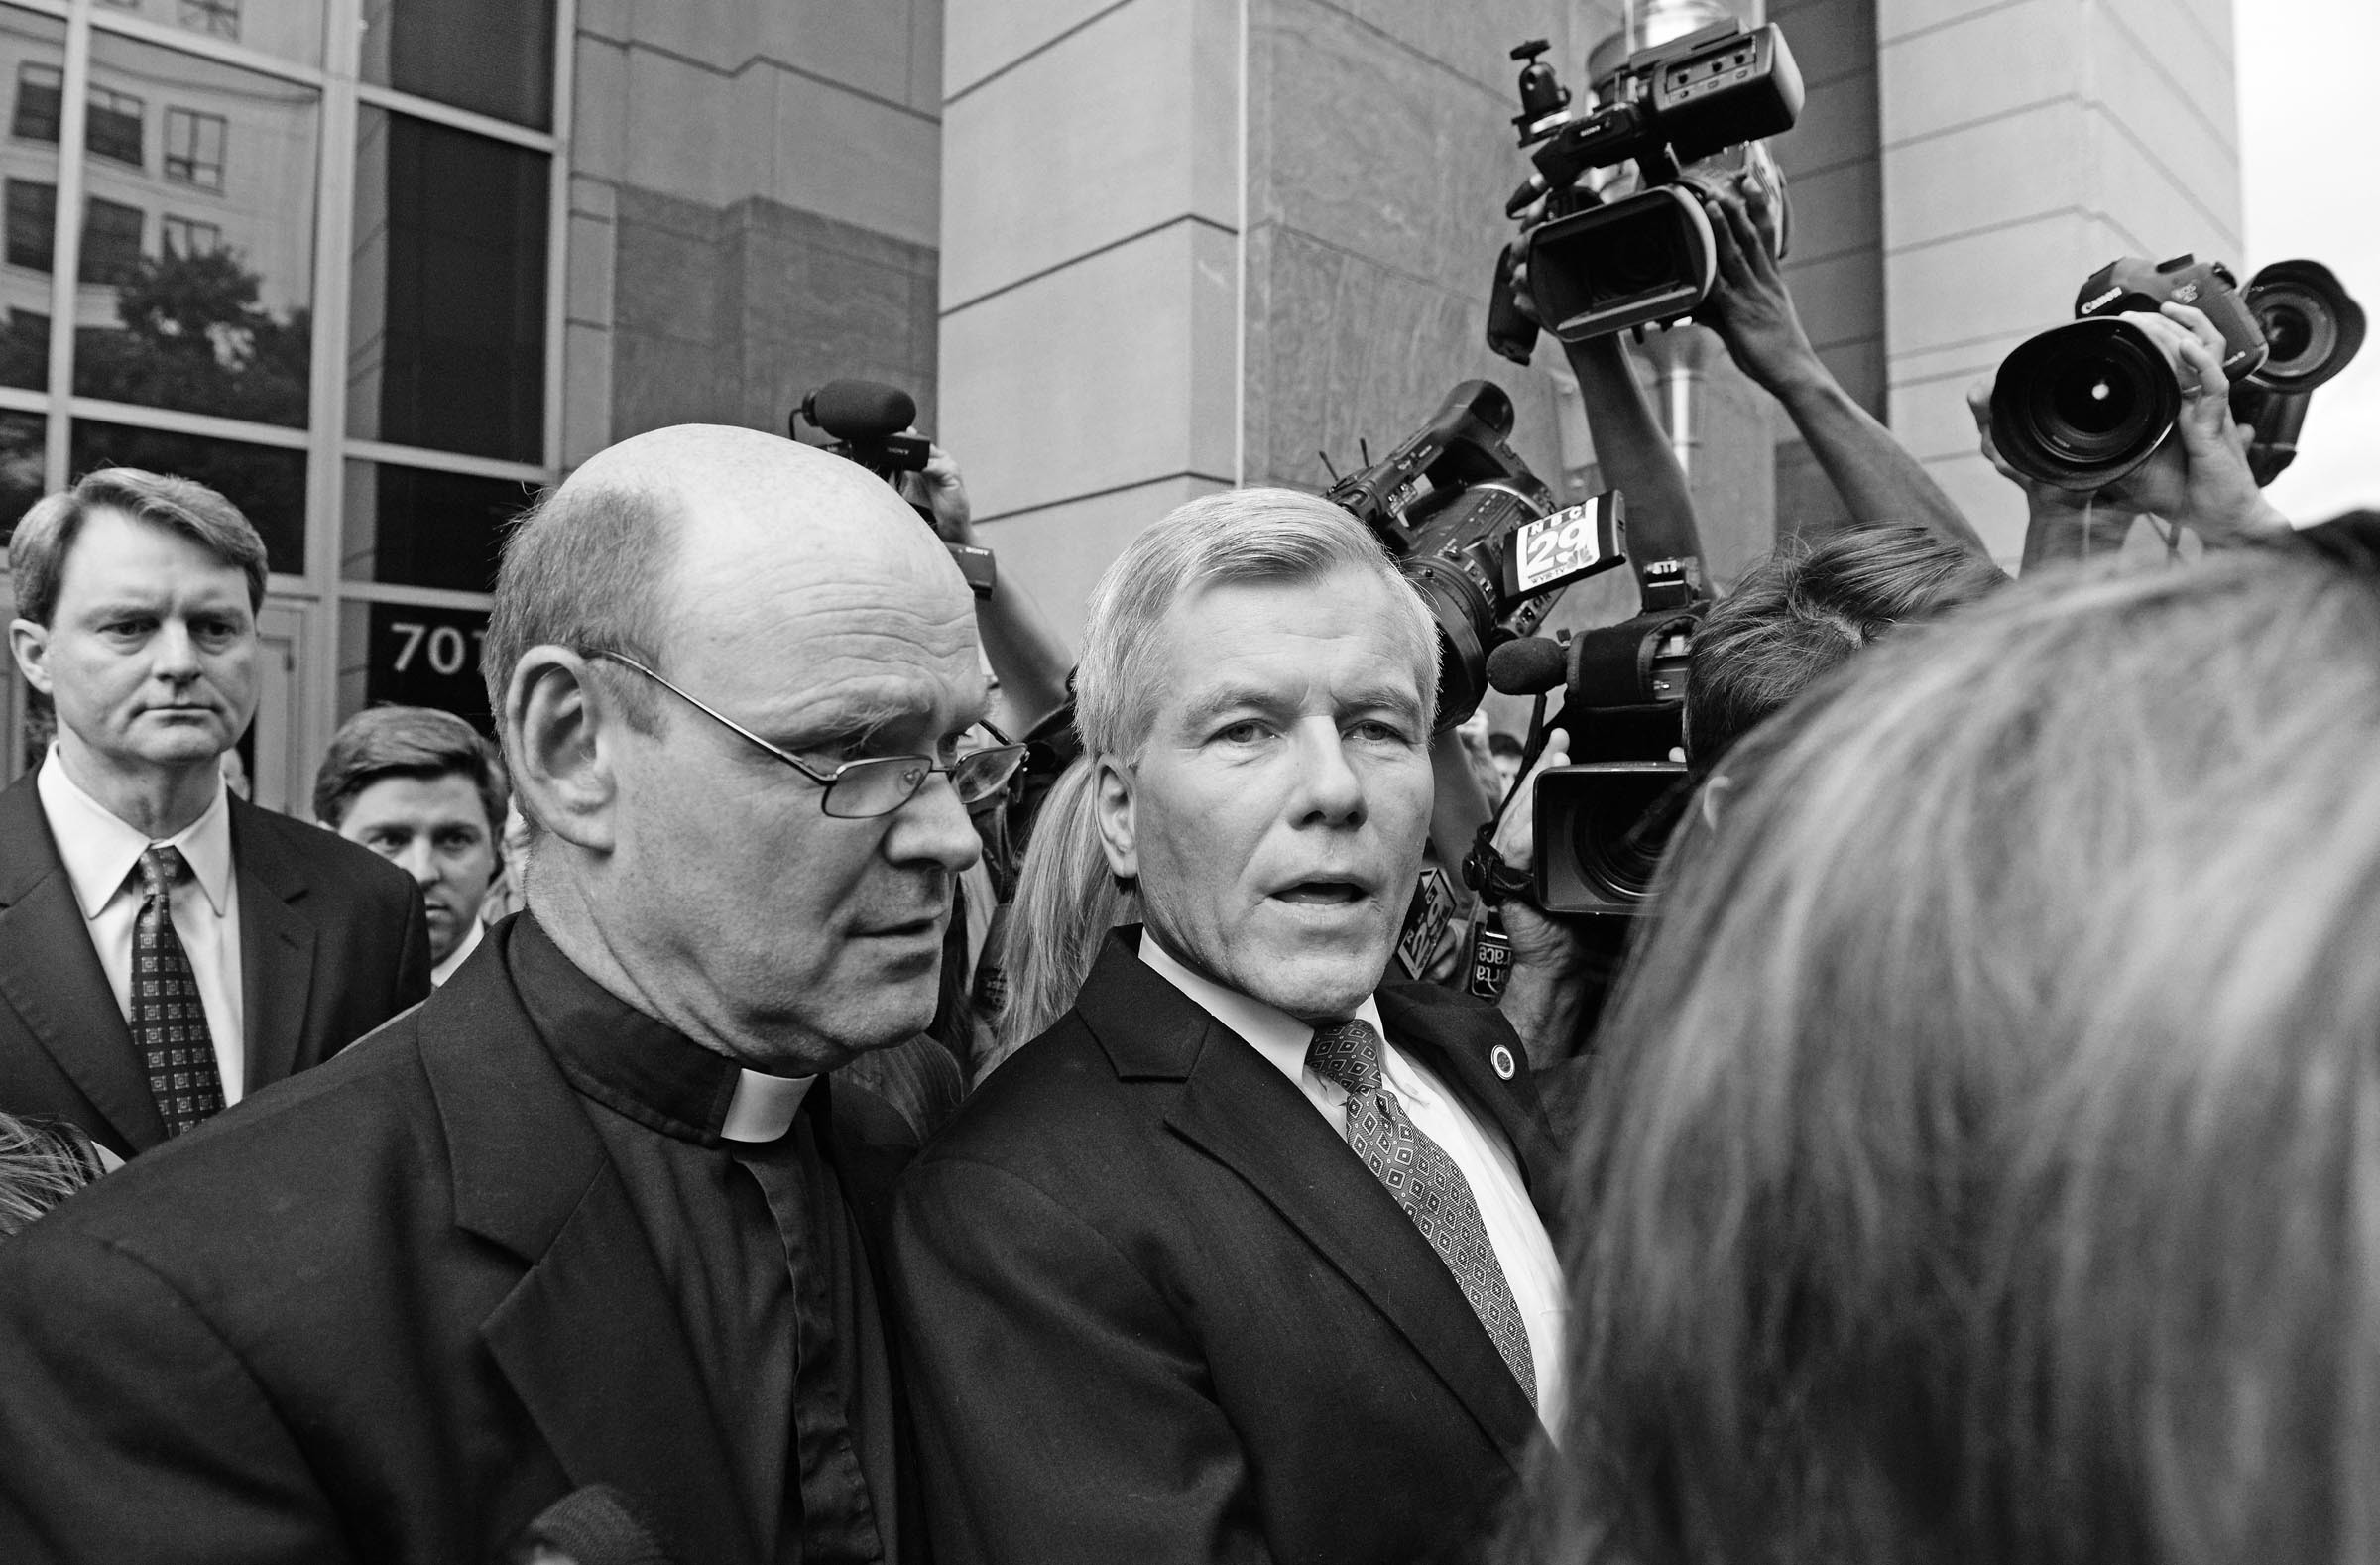 McDonnell appears stunned when he leaves the courthouse after being found guilty on 11 of 14 counts against him. He faces decades in jail, but lawyers who have been watching the case say he's more like to serve between one and three years. - SCOTT ELMQUIST